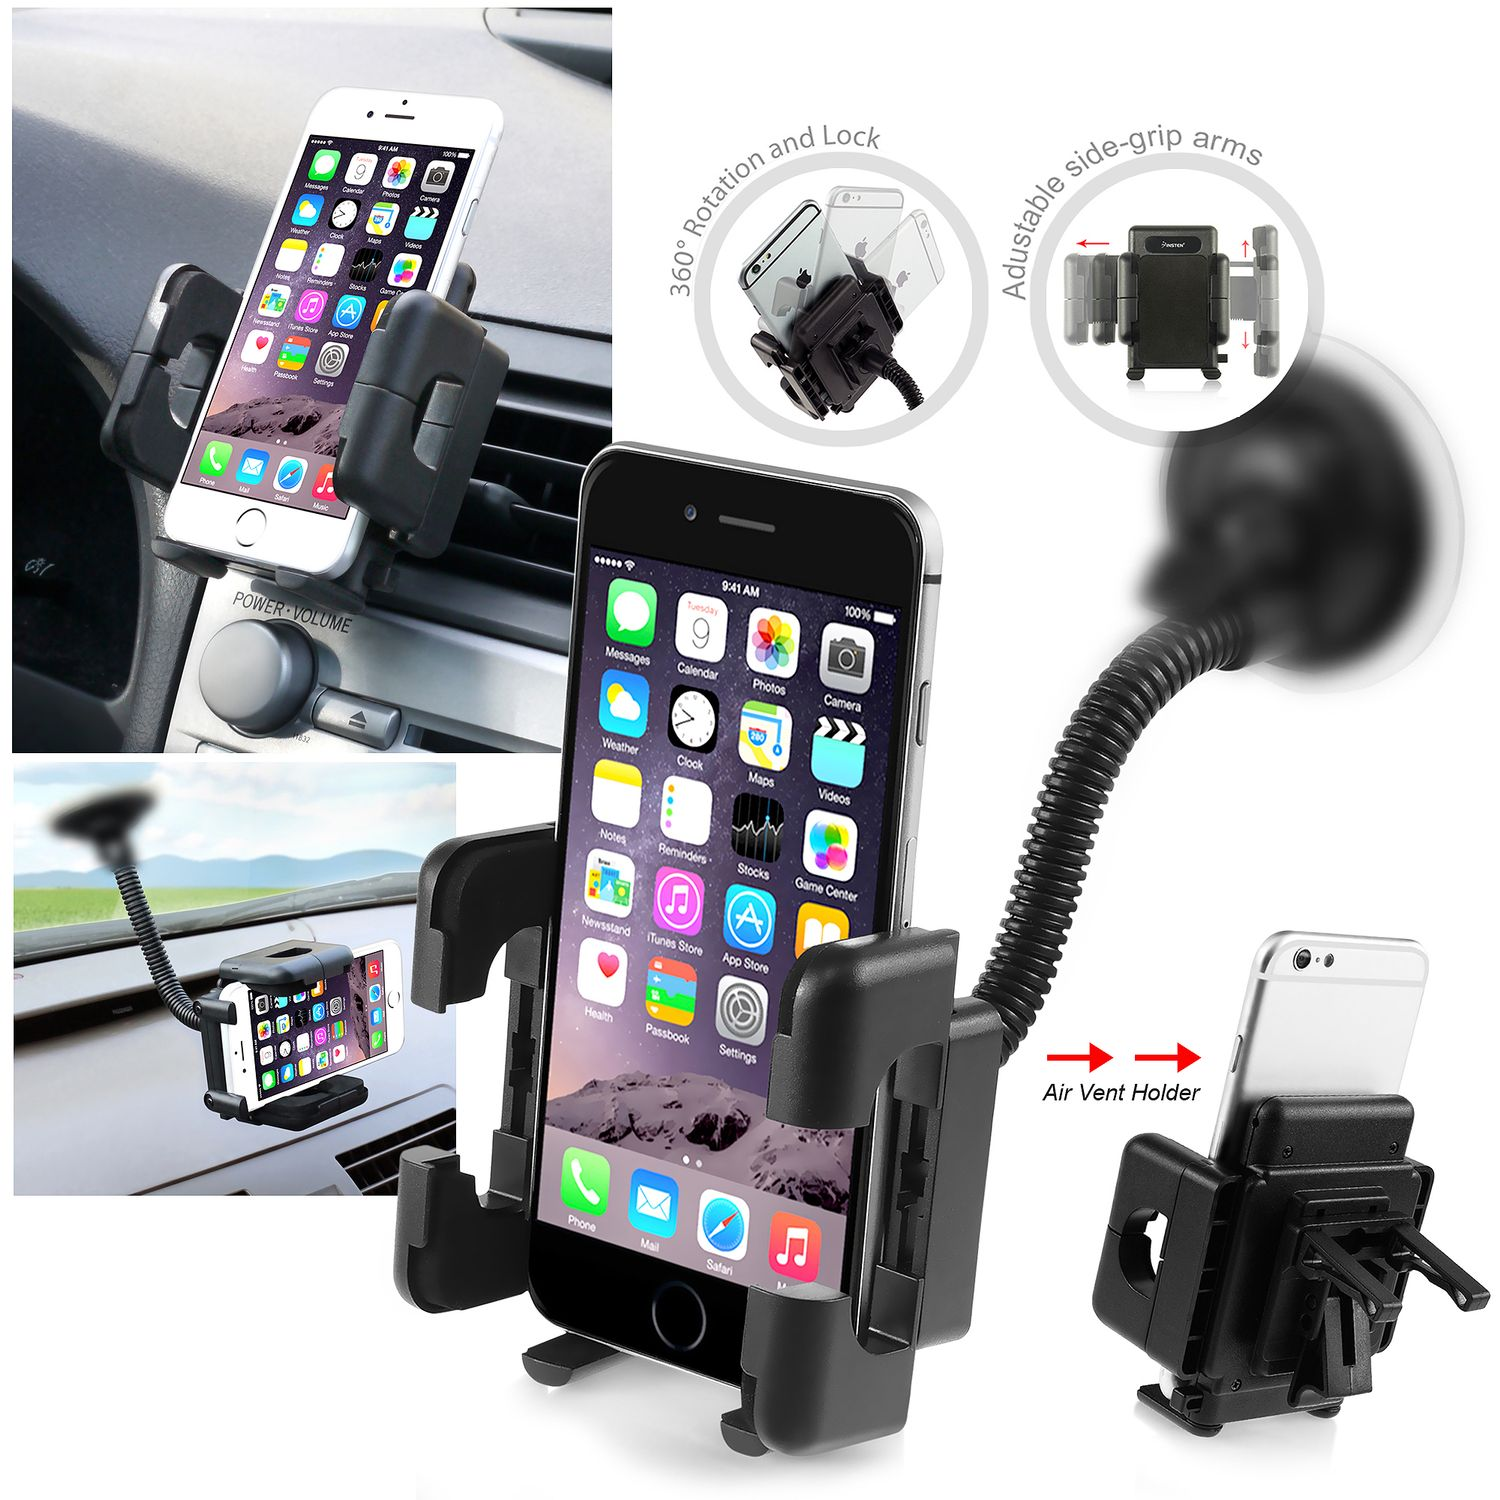 2 pcs Car Windshield Car Mount Cell Phone Holder by Insten For iPhone XS X 10 8 7 Plus 6 6S 5c Samsung Galaxy S9 S8 S7 S6 S5 Note 8 5 J7 J1 LG G6 Stylo 3 Stylus K8v ZTE Zmax Pro Max  (2-Pack Bundle)